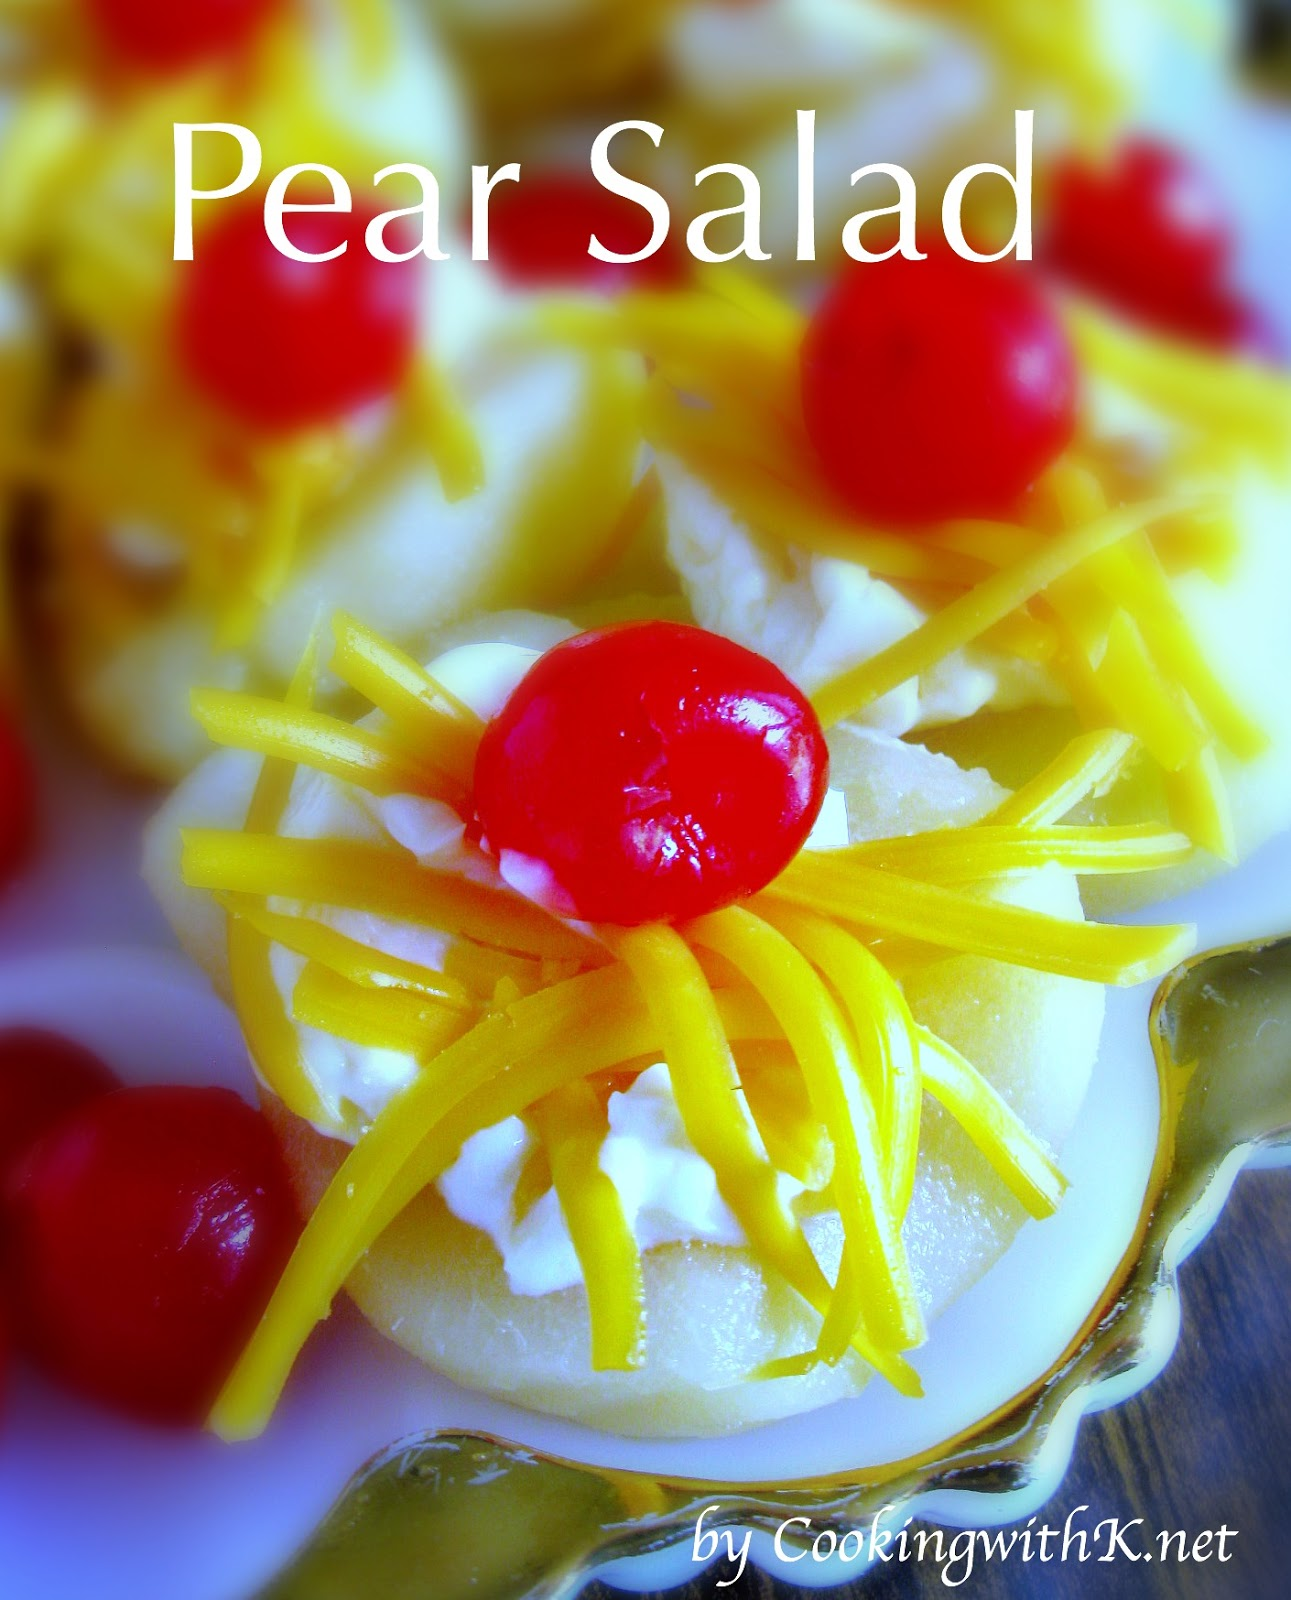 Pear Salad,  a vintage recipe going way back.  Pears are filled with mayonnaise and freshly grated cheddar cheese, then topped with a cherry.